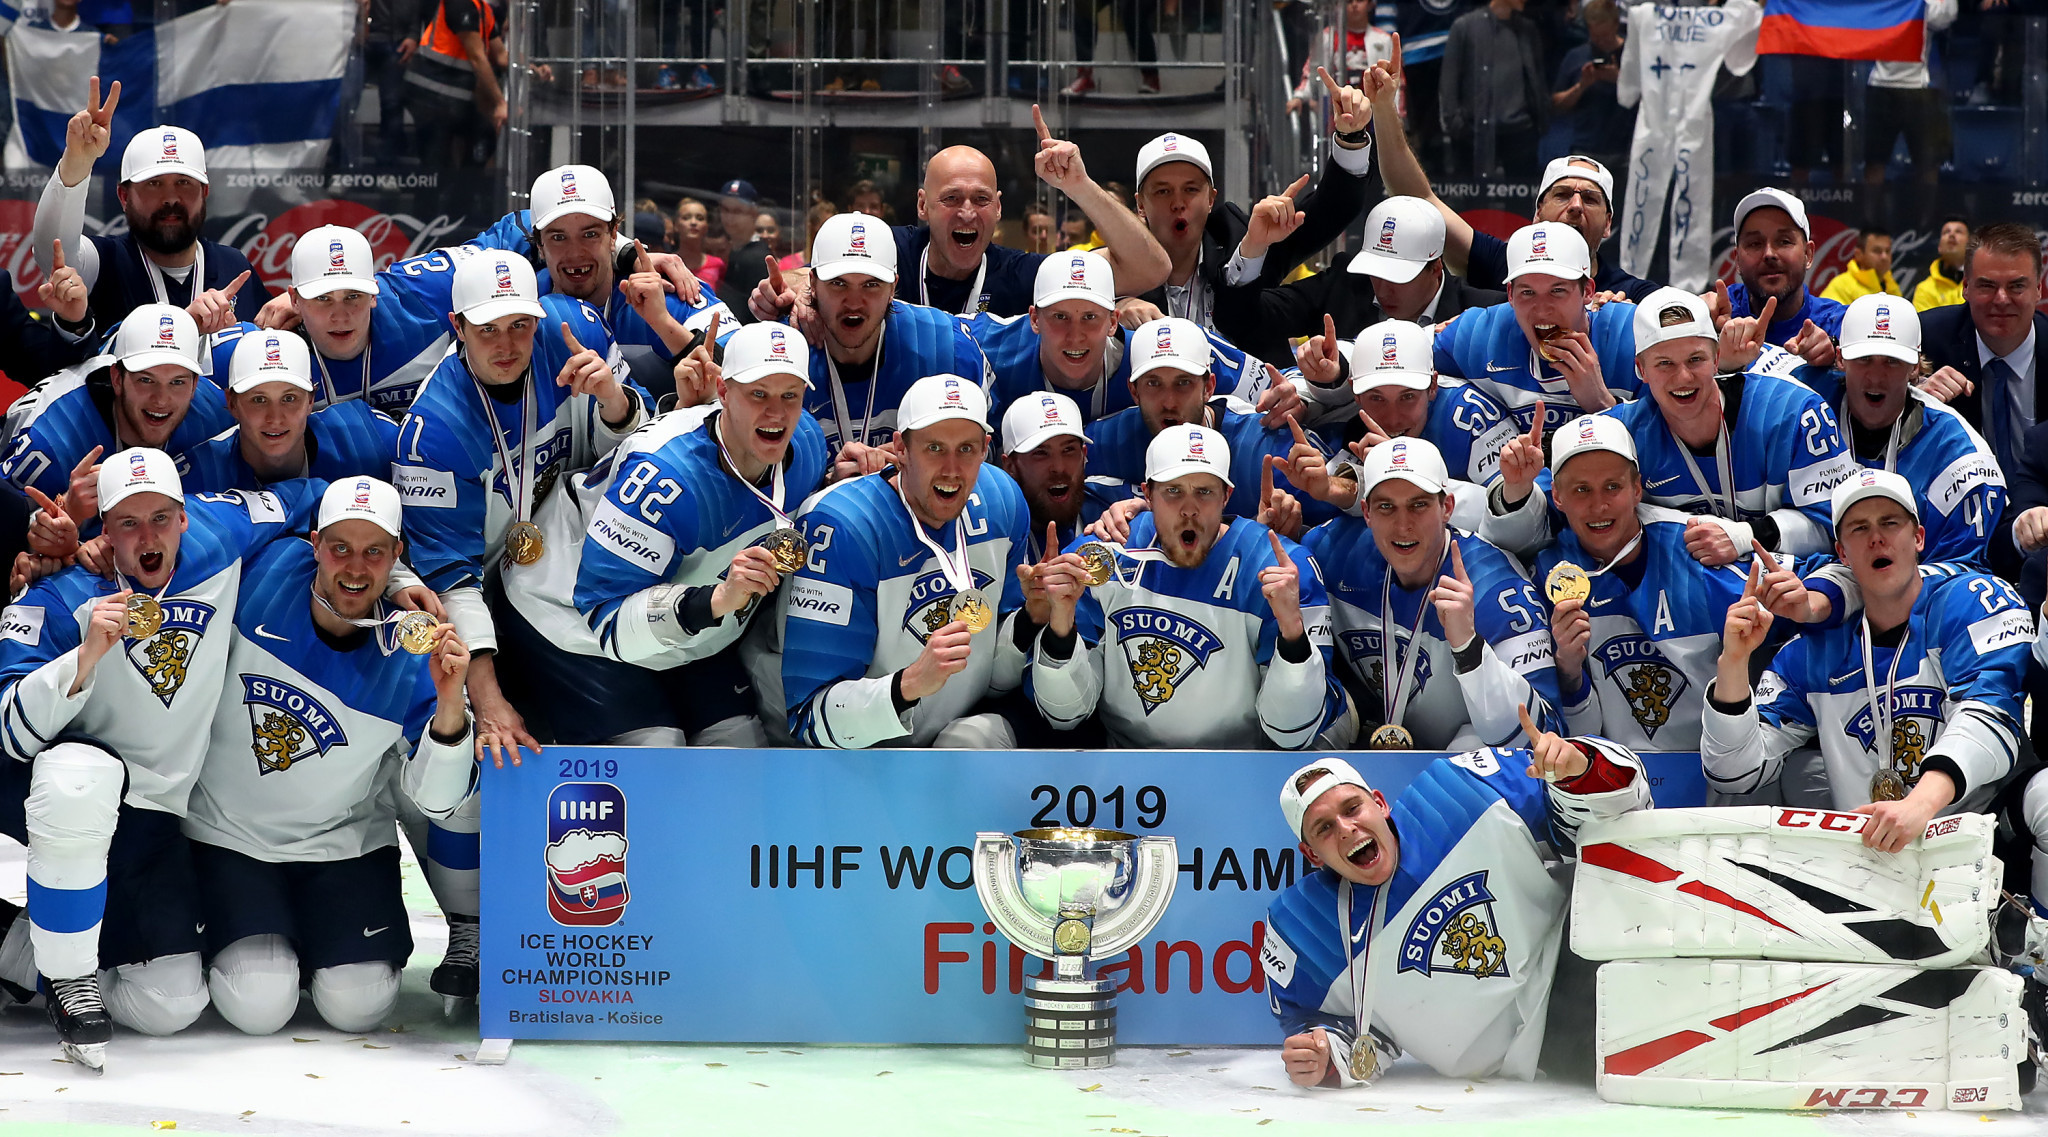 Finland will defend their title in Switzerland next year ©Getty Images